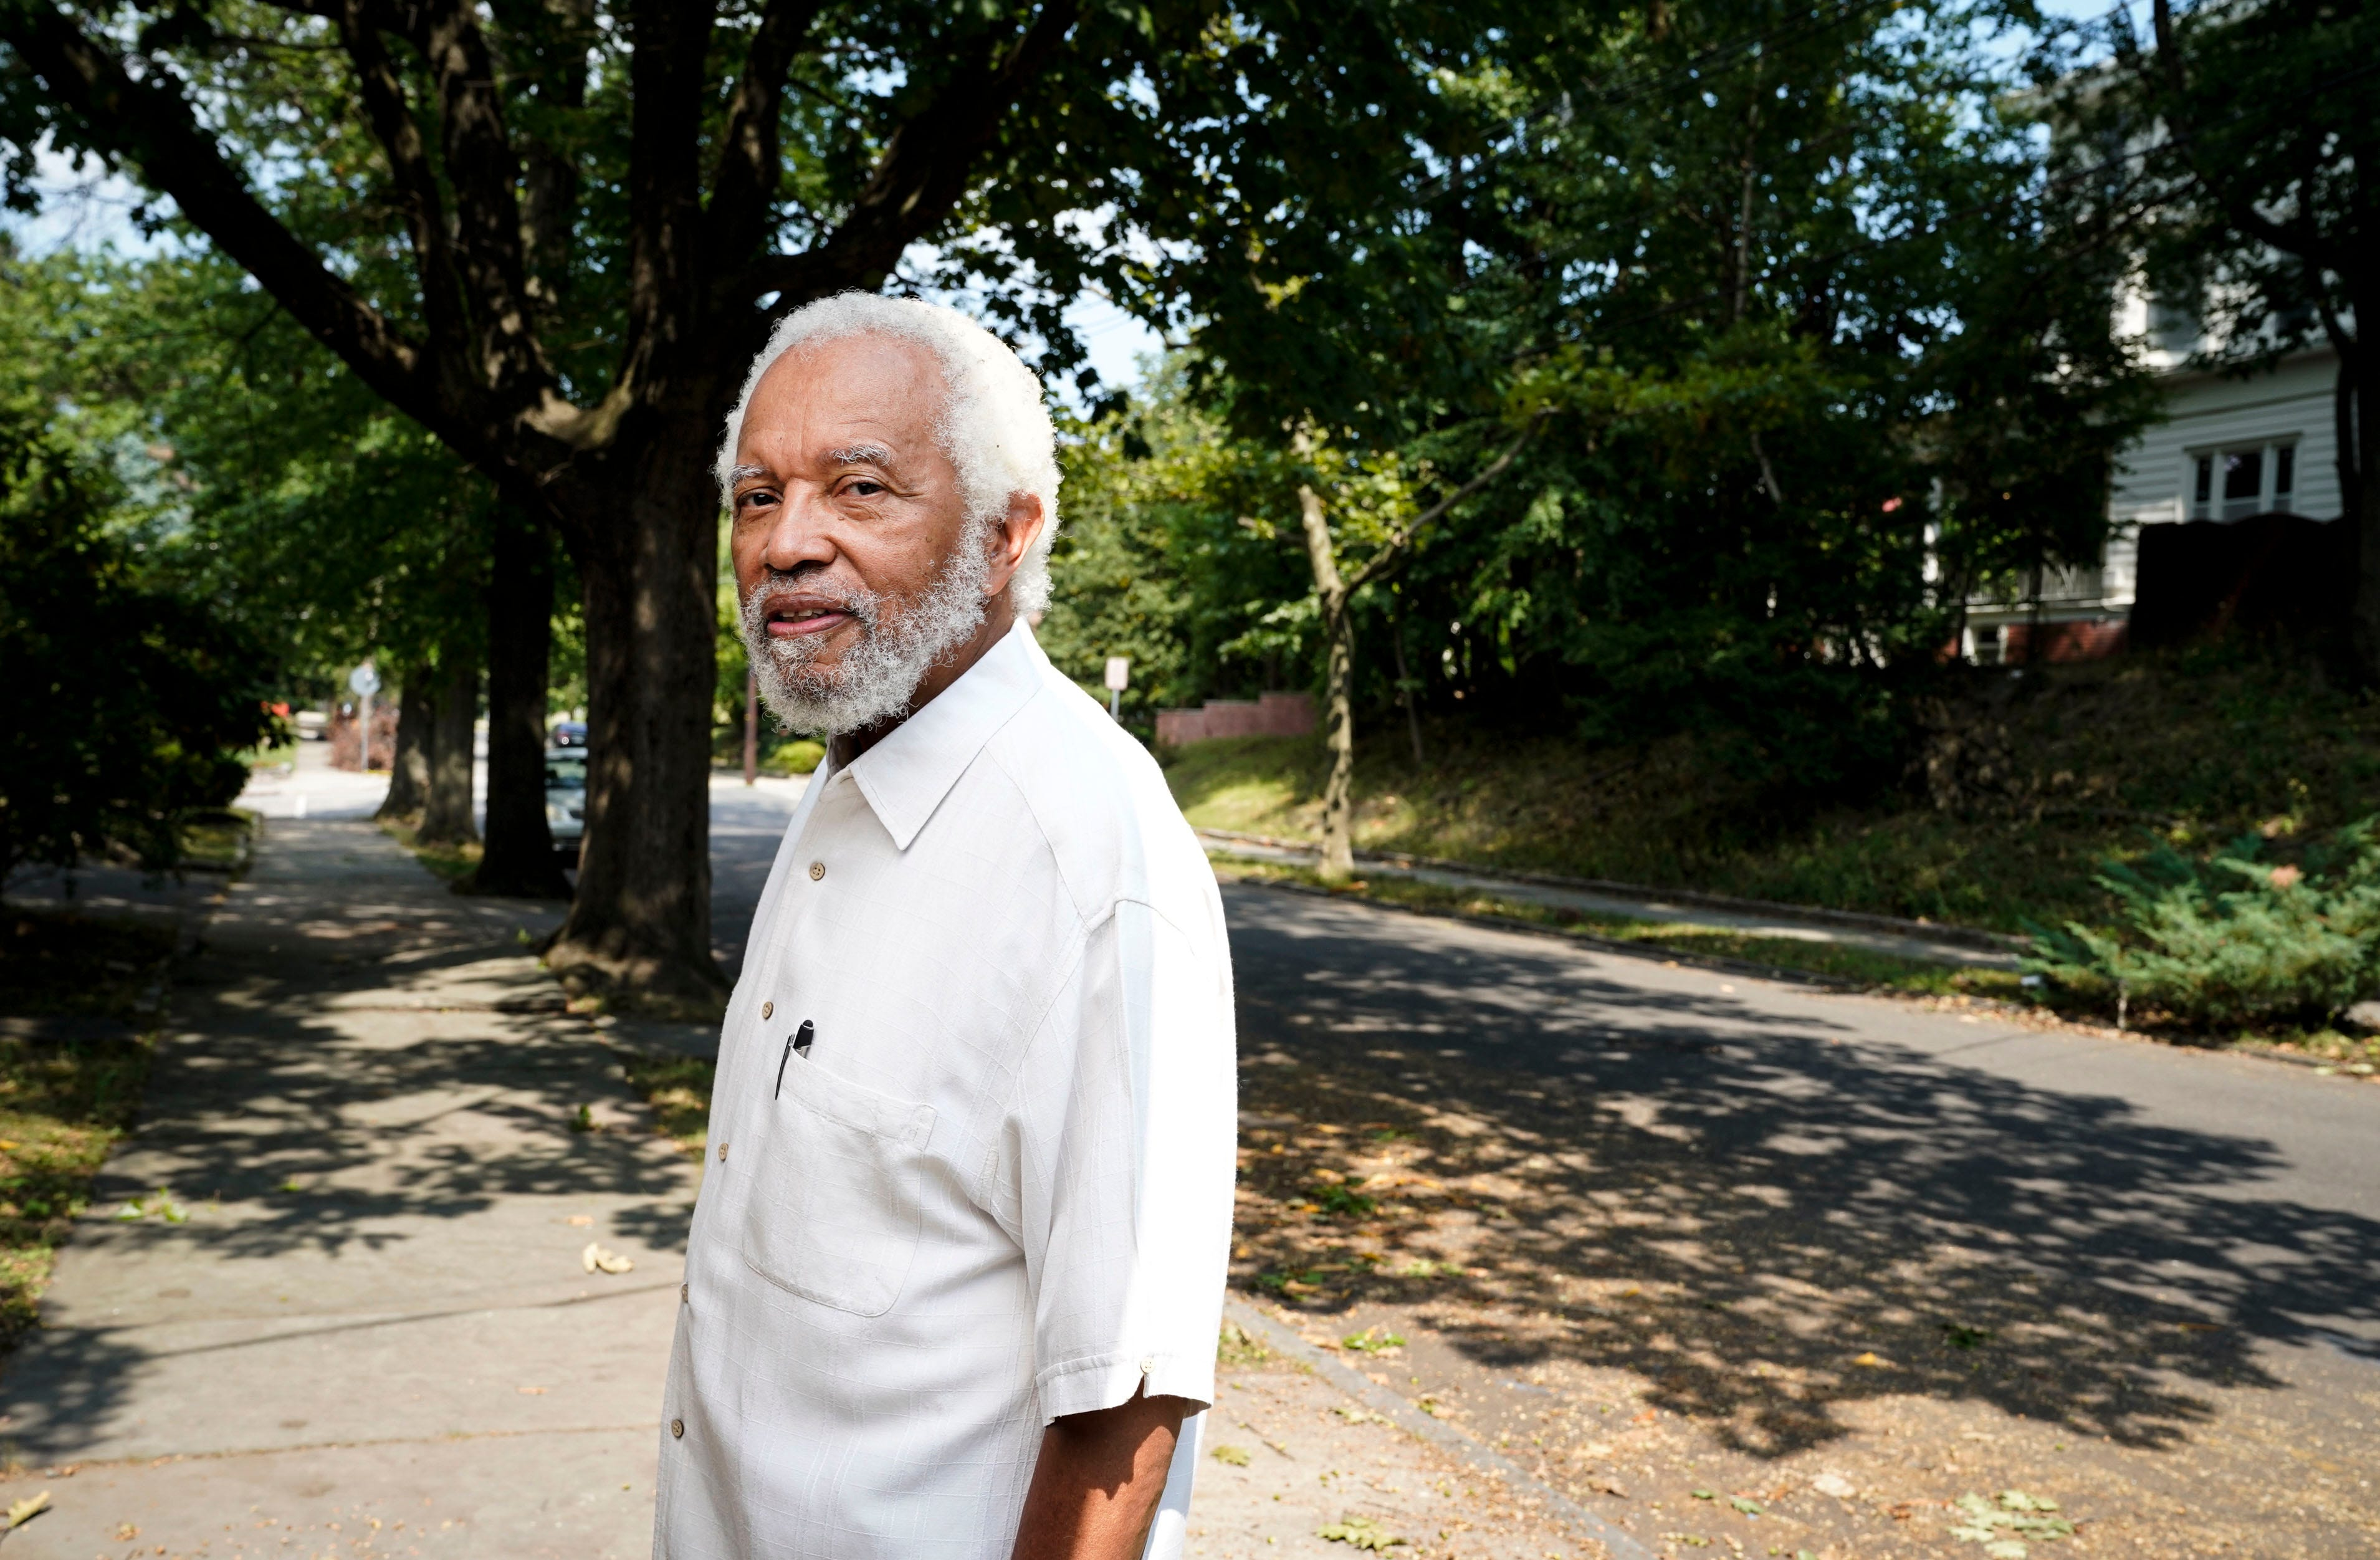 """""""We were confined to houses owned by someone else who had moved to the suburbs,'' says Newark historian and activist Junius Williams. """"It perpetuated their wealth at the expense of people who couldn't move."""""""